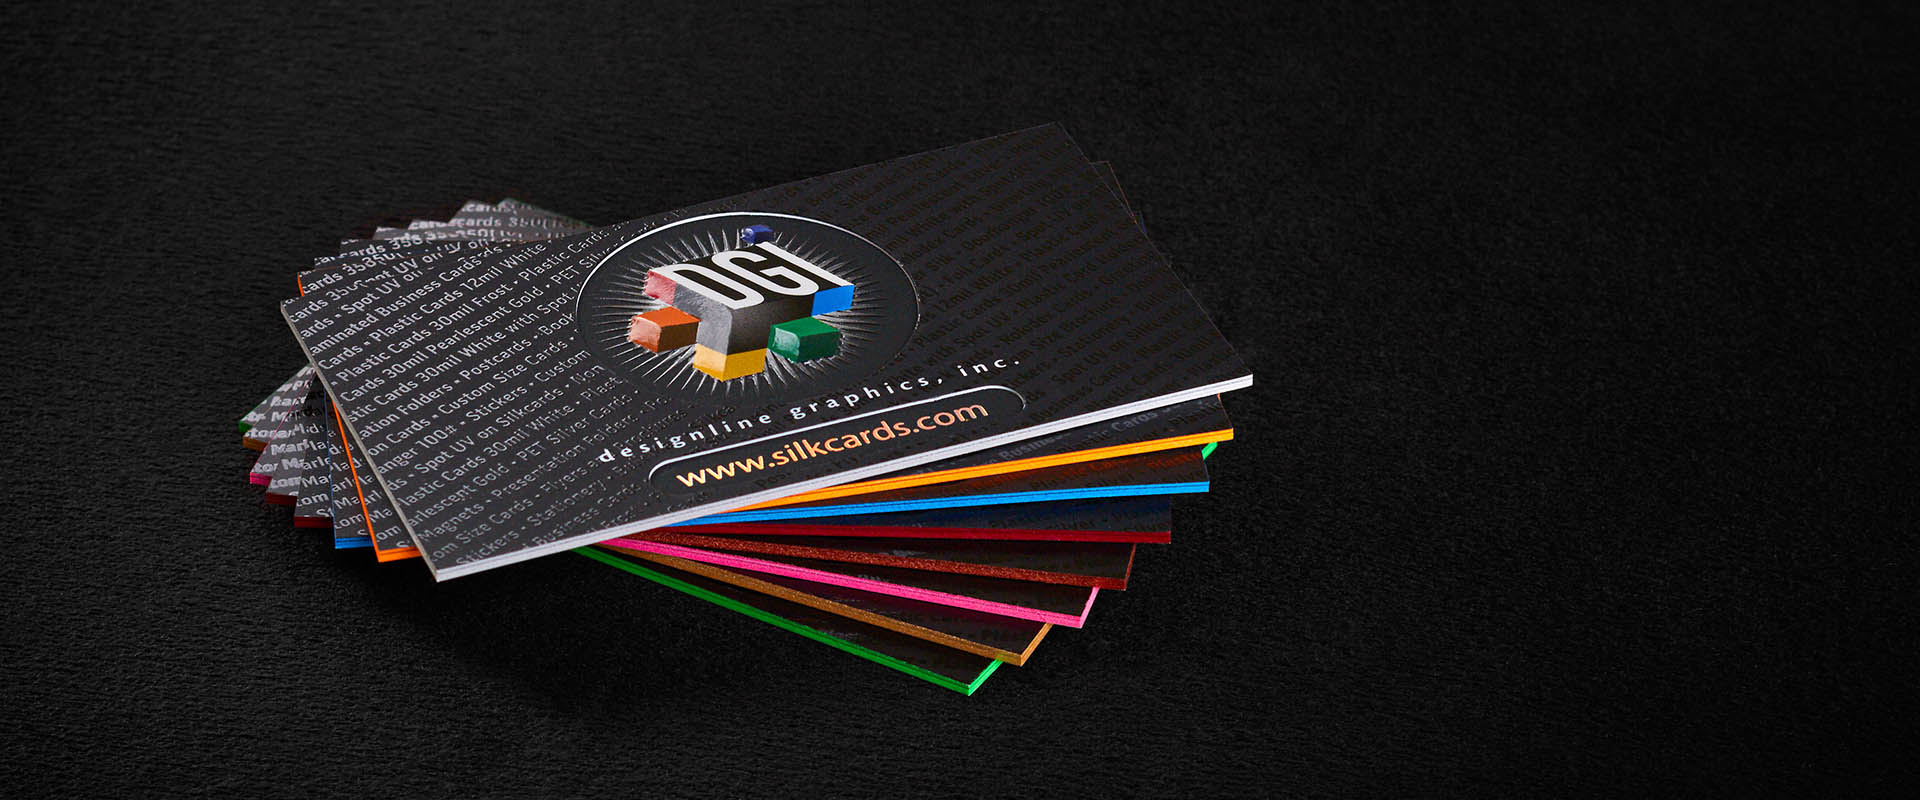 Raised spot uv silkcards 16pt suede xtreme 48pt with raised spot uv on the small lettering reheart Image collections